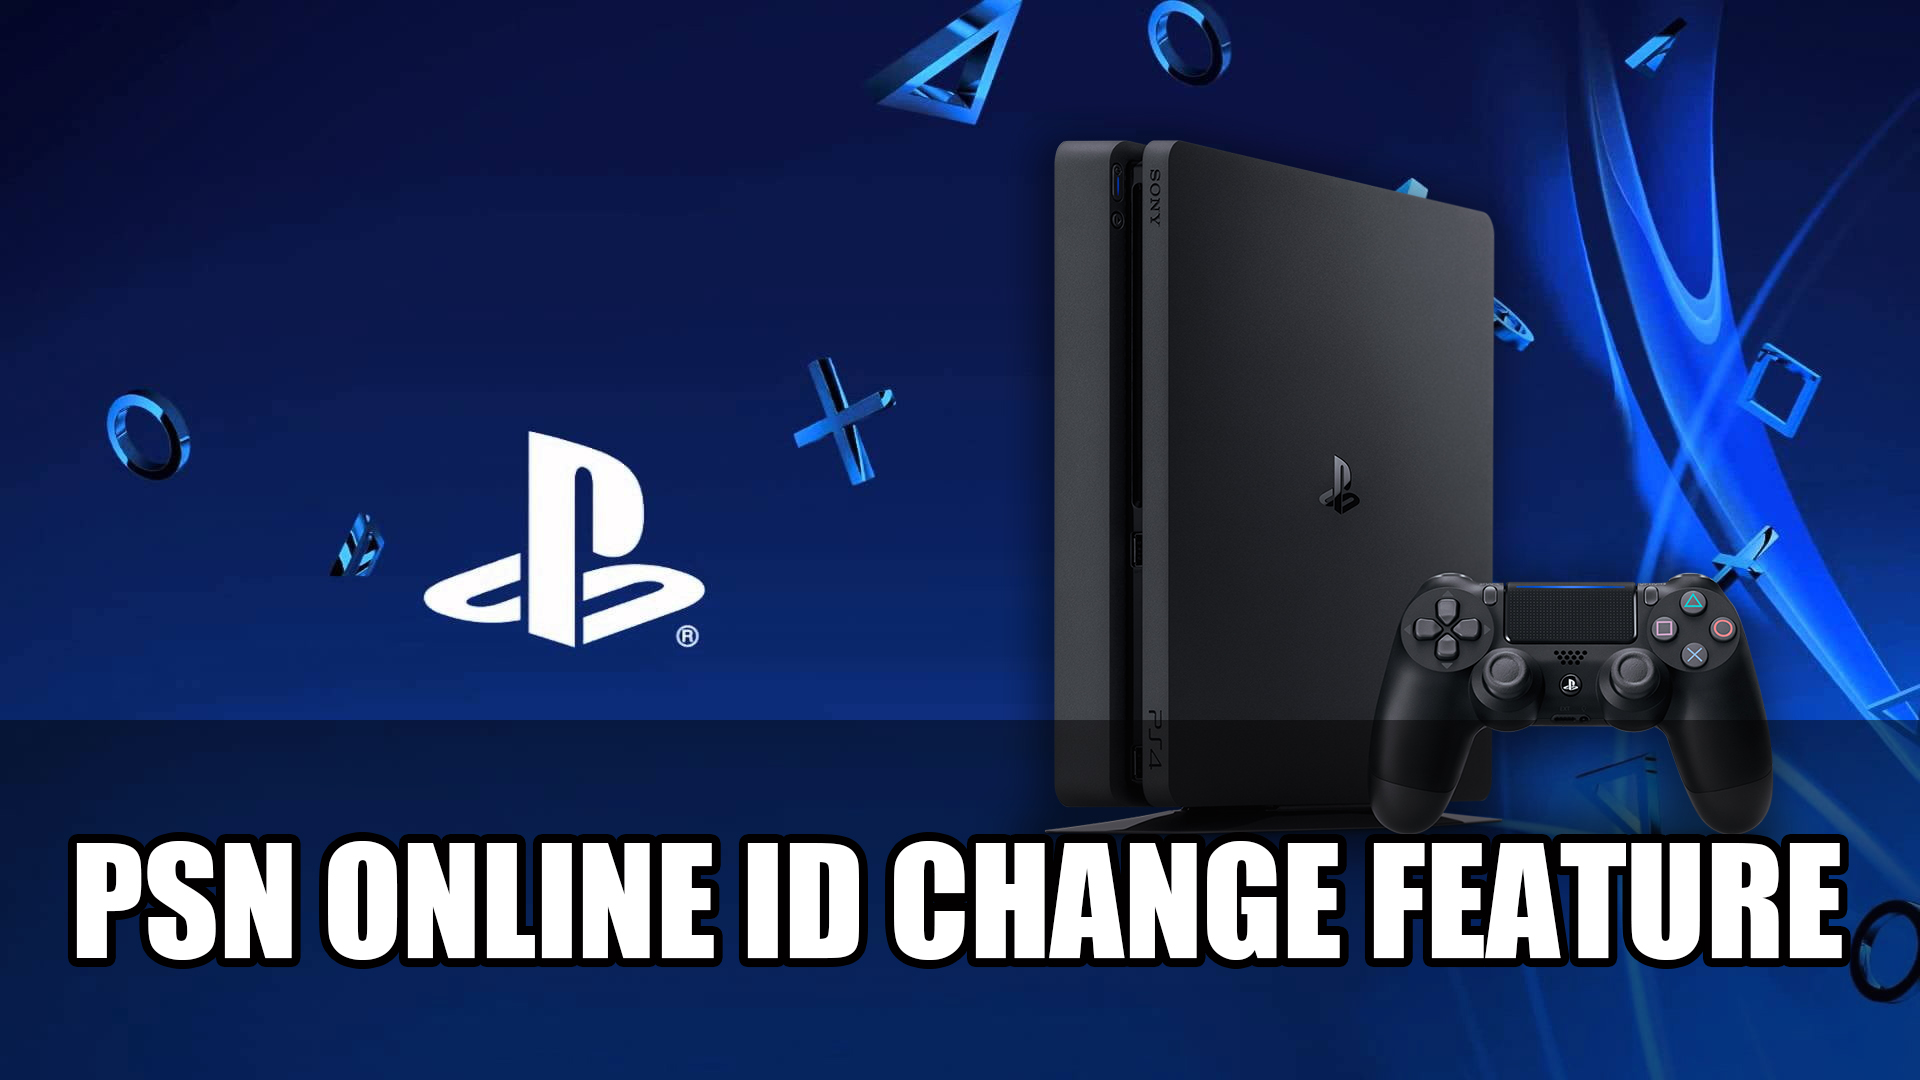 Playstation Are Finally Adding Psn Online Id Change Feature